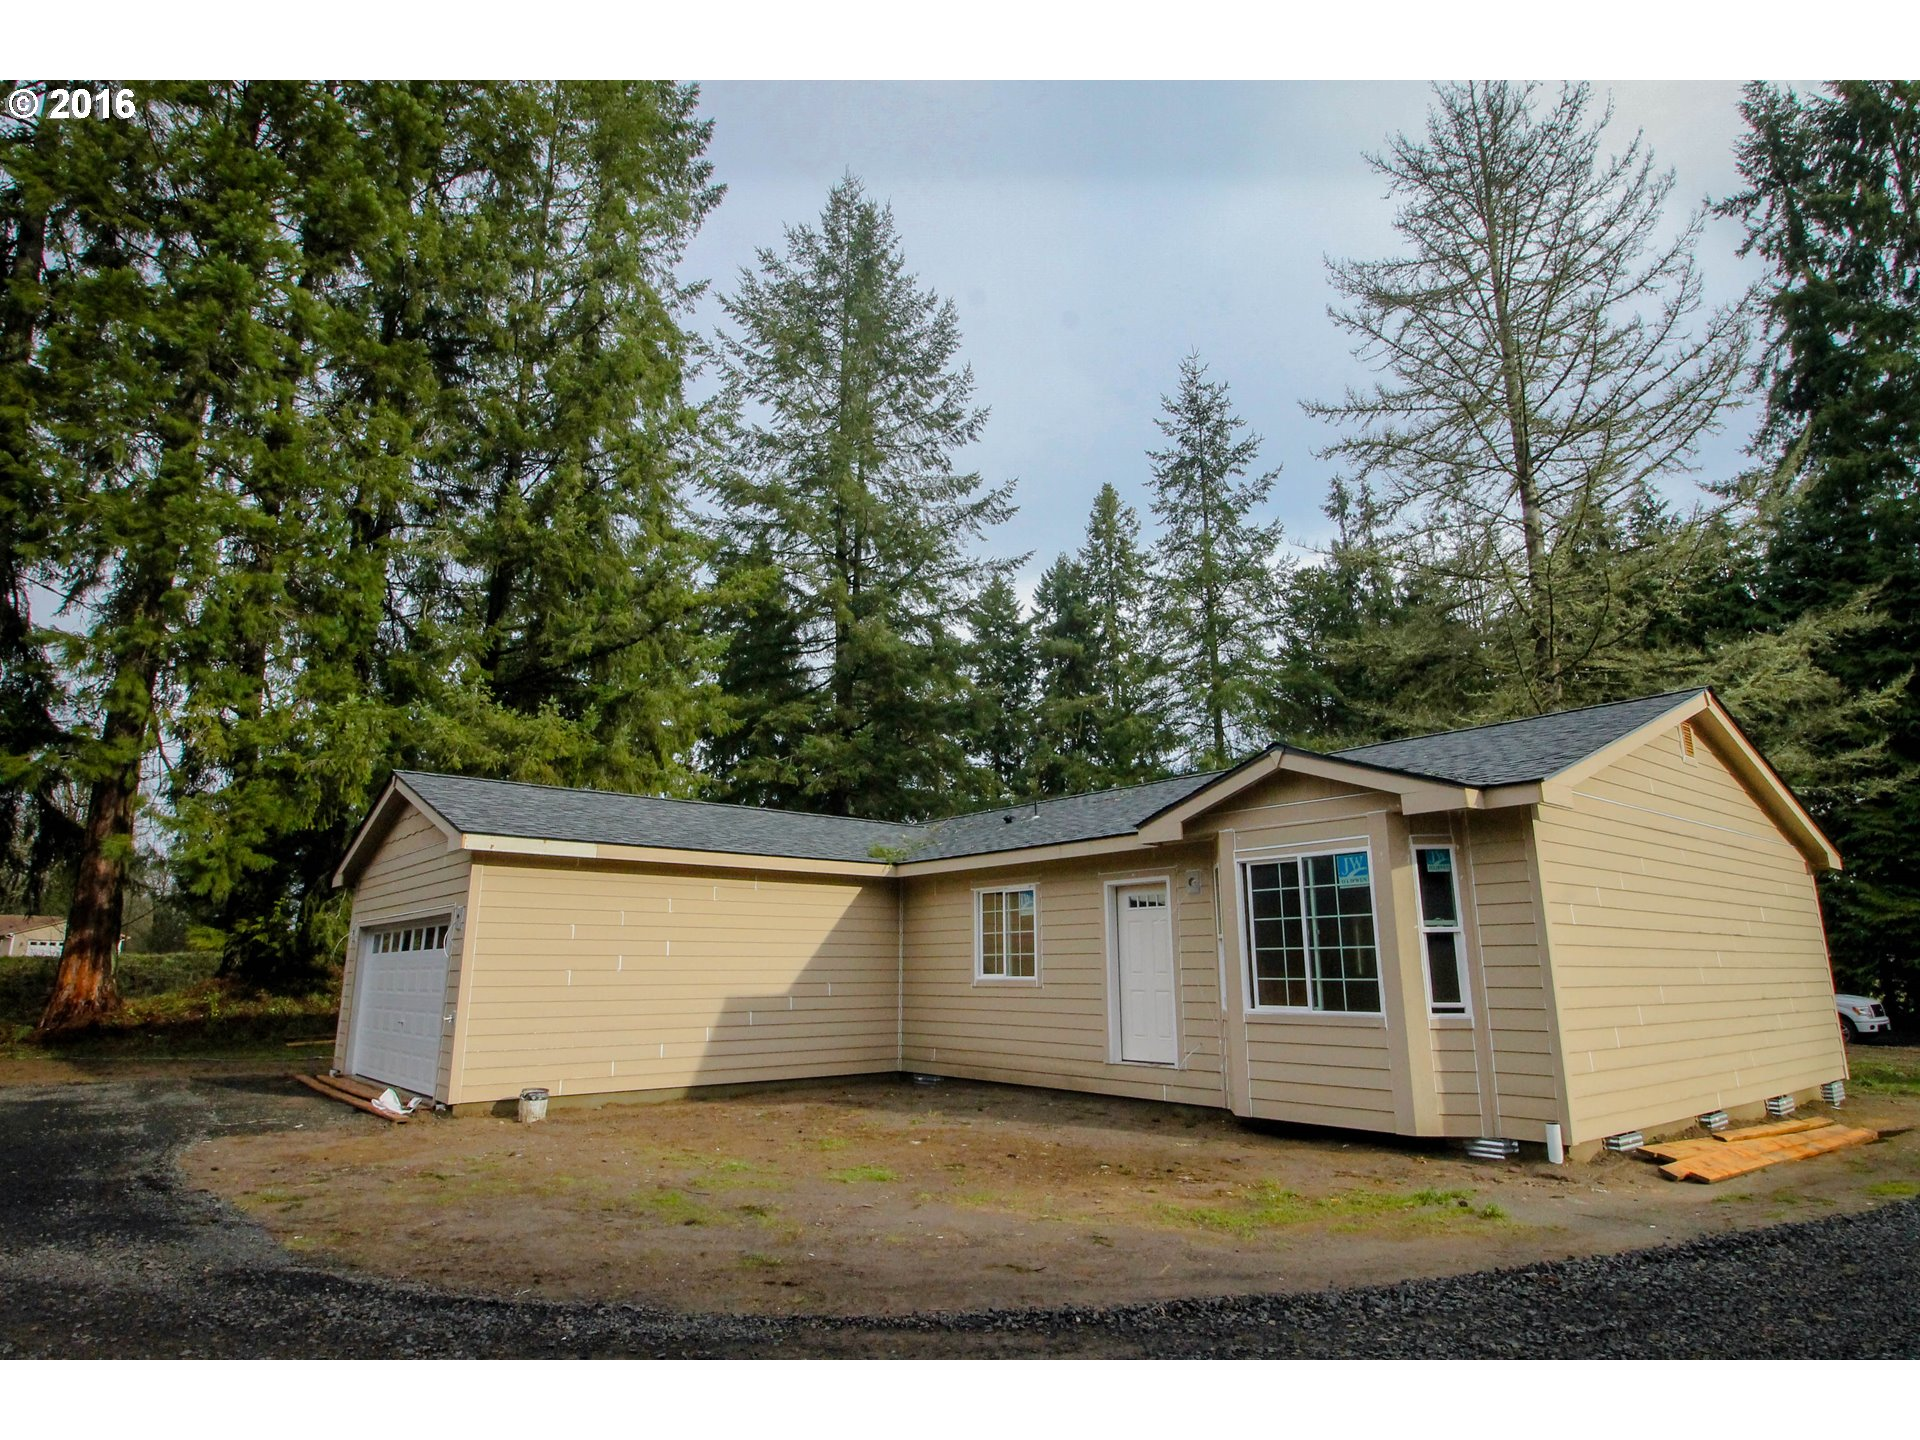 239 Umiker Rd, Castle Rock, WA